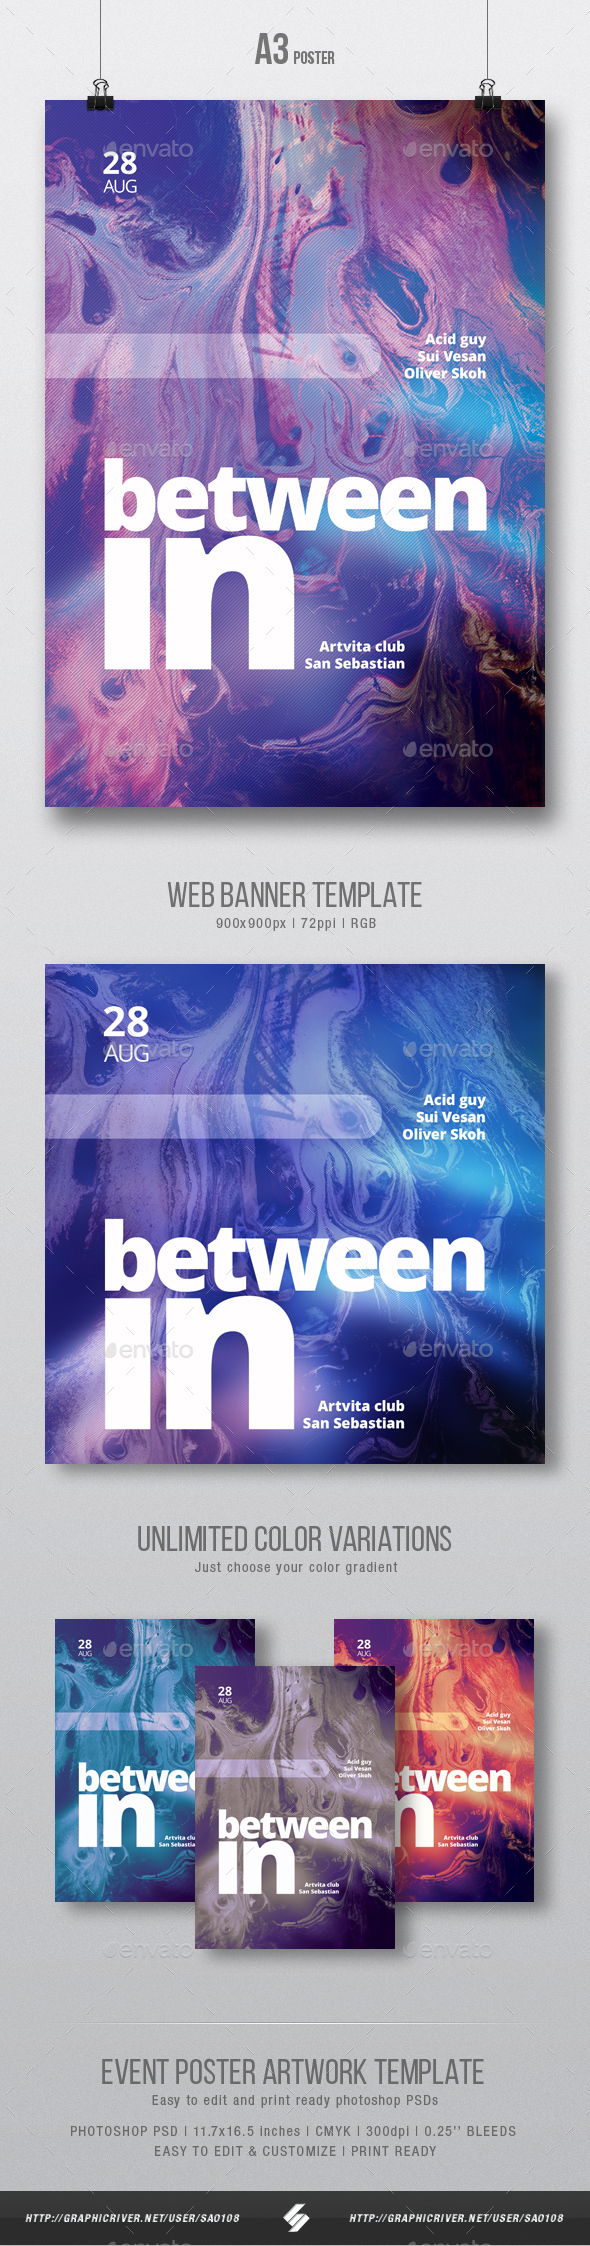 In between - Abstract Event Poster / Flyer Artwork Template A3 - Events Flyers